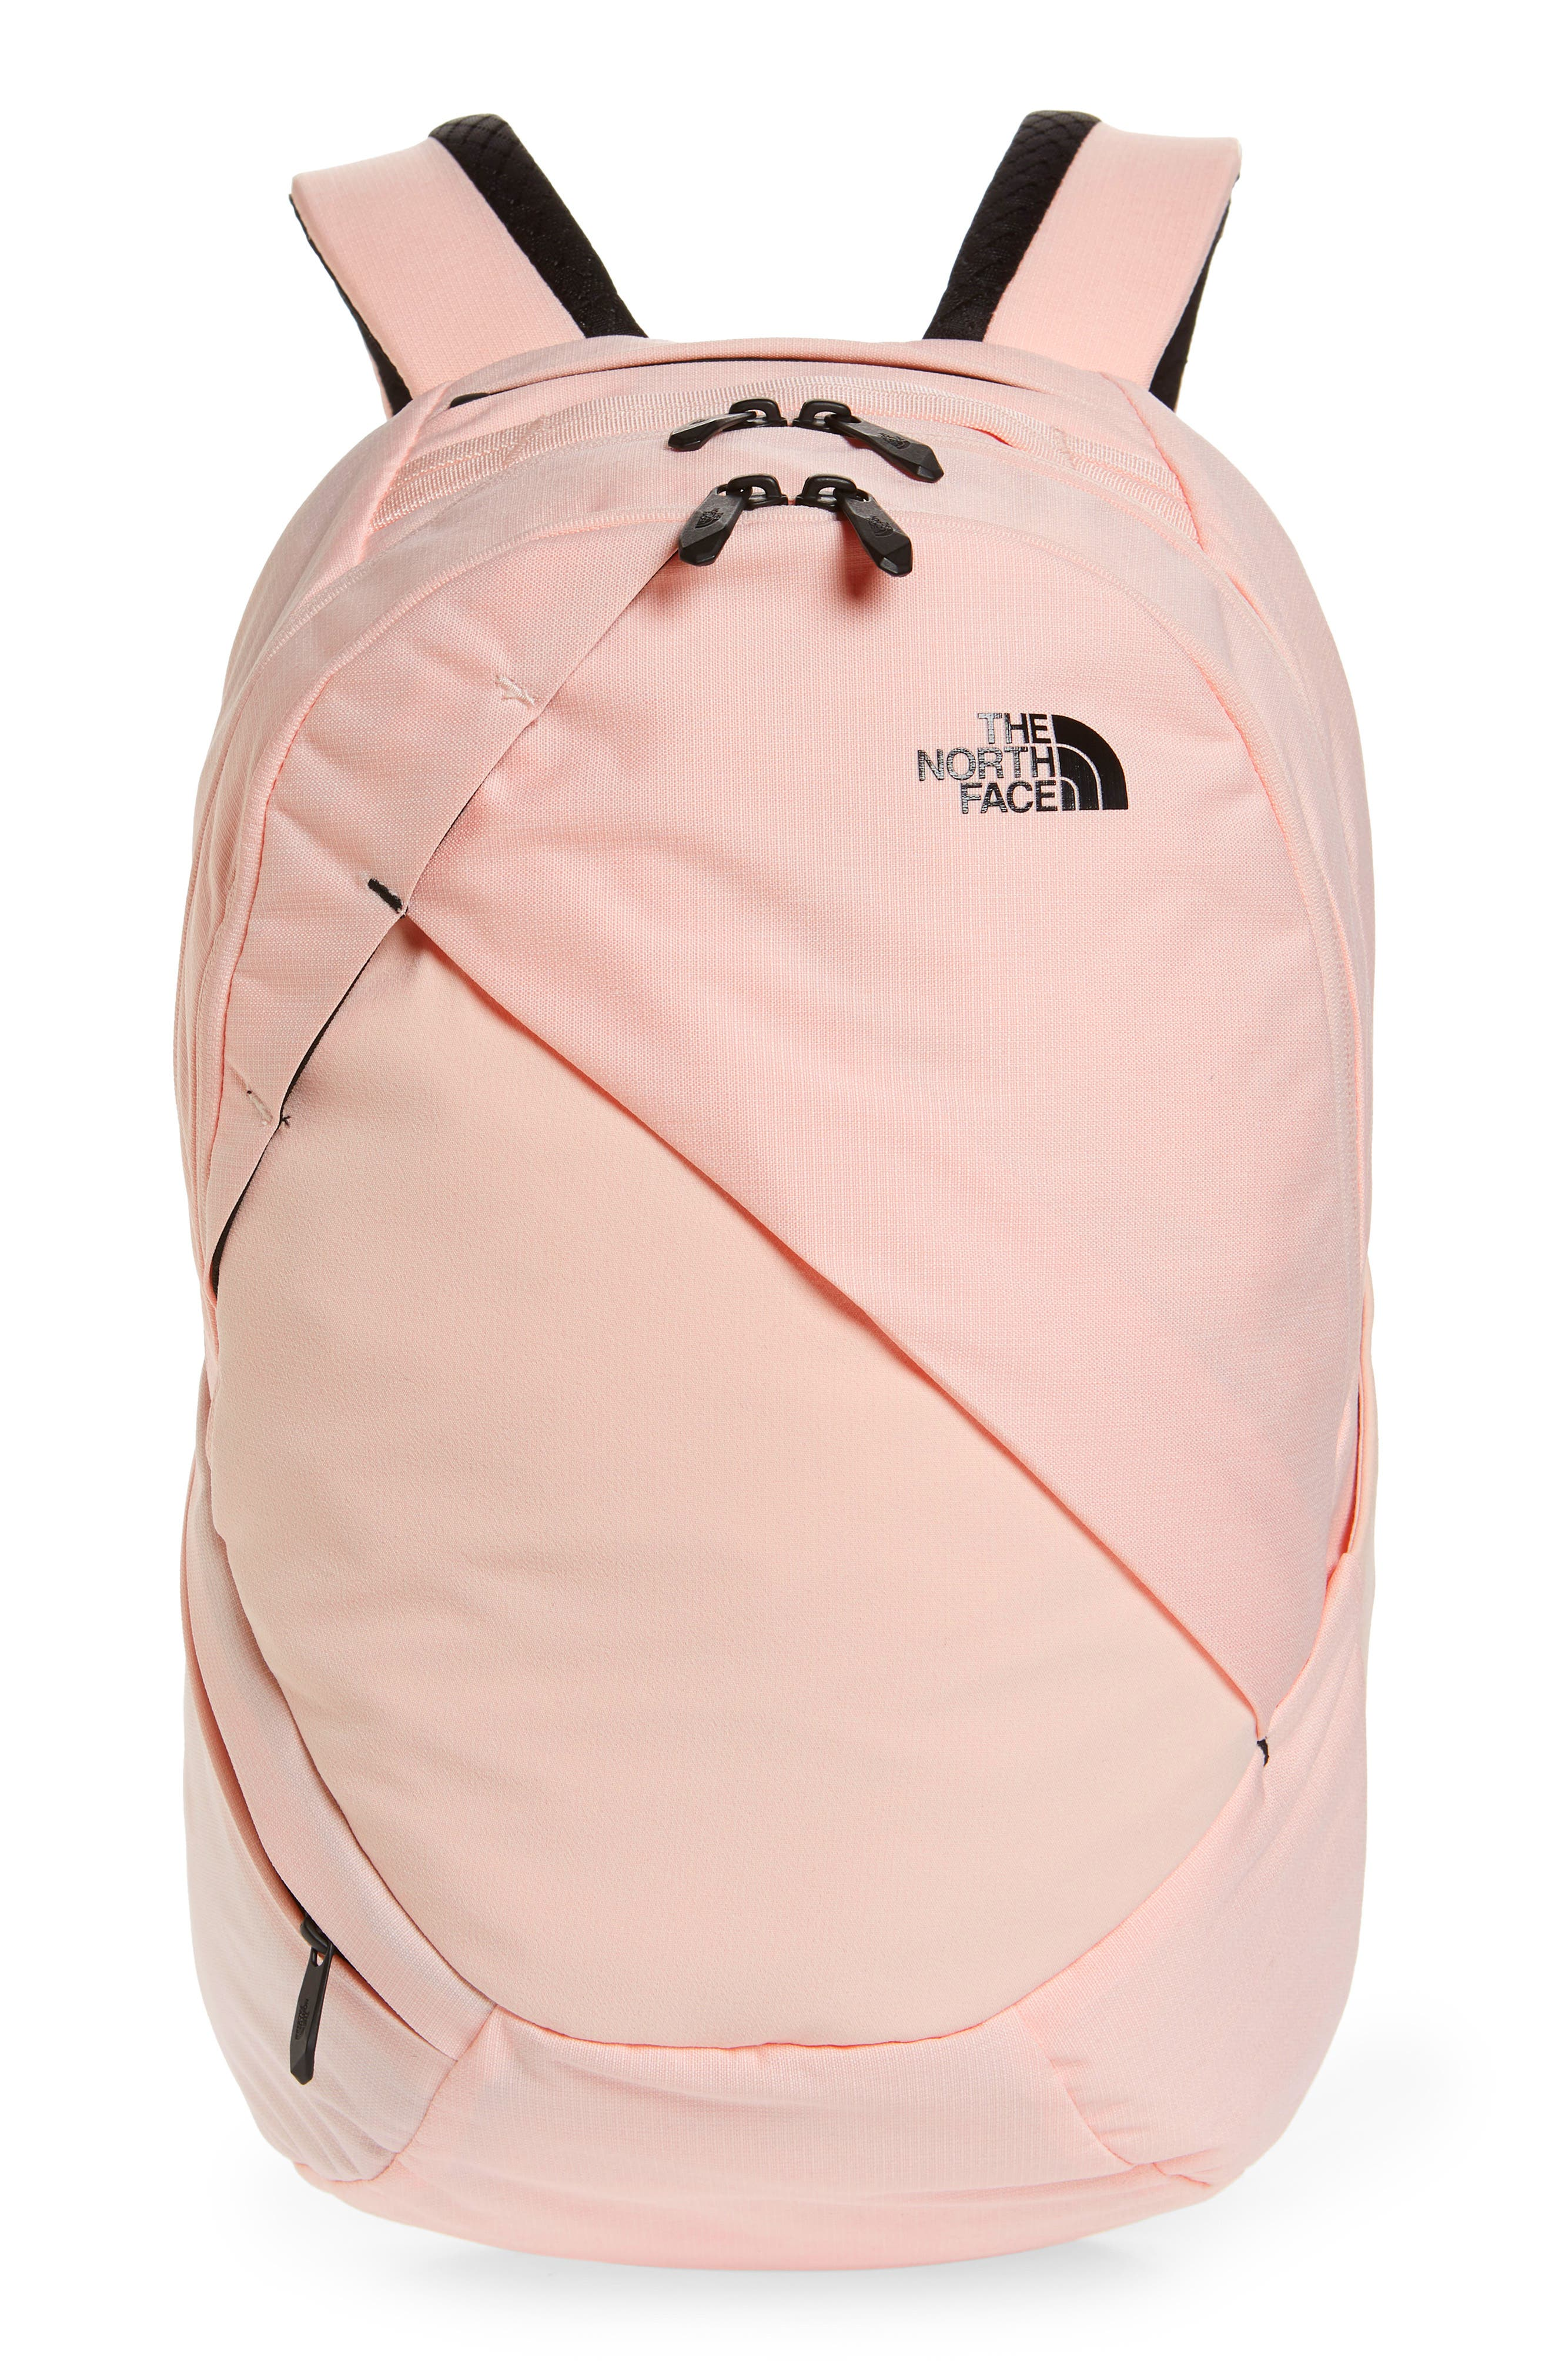 THE NORTH FACE 'Isabella' Backpack, Main, color, PINK LIGHT HEATHER/ TNF BLACK